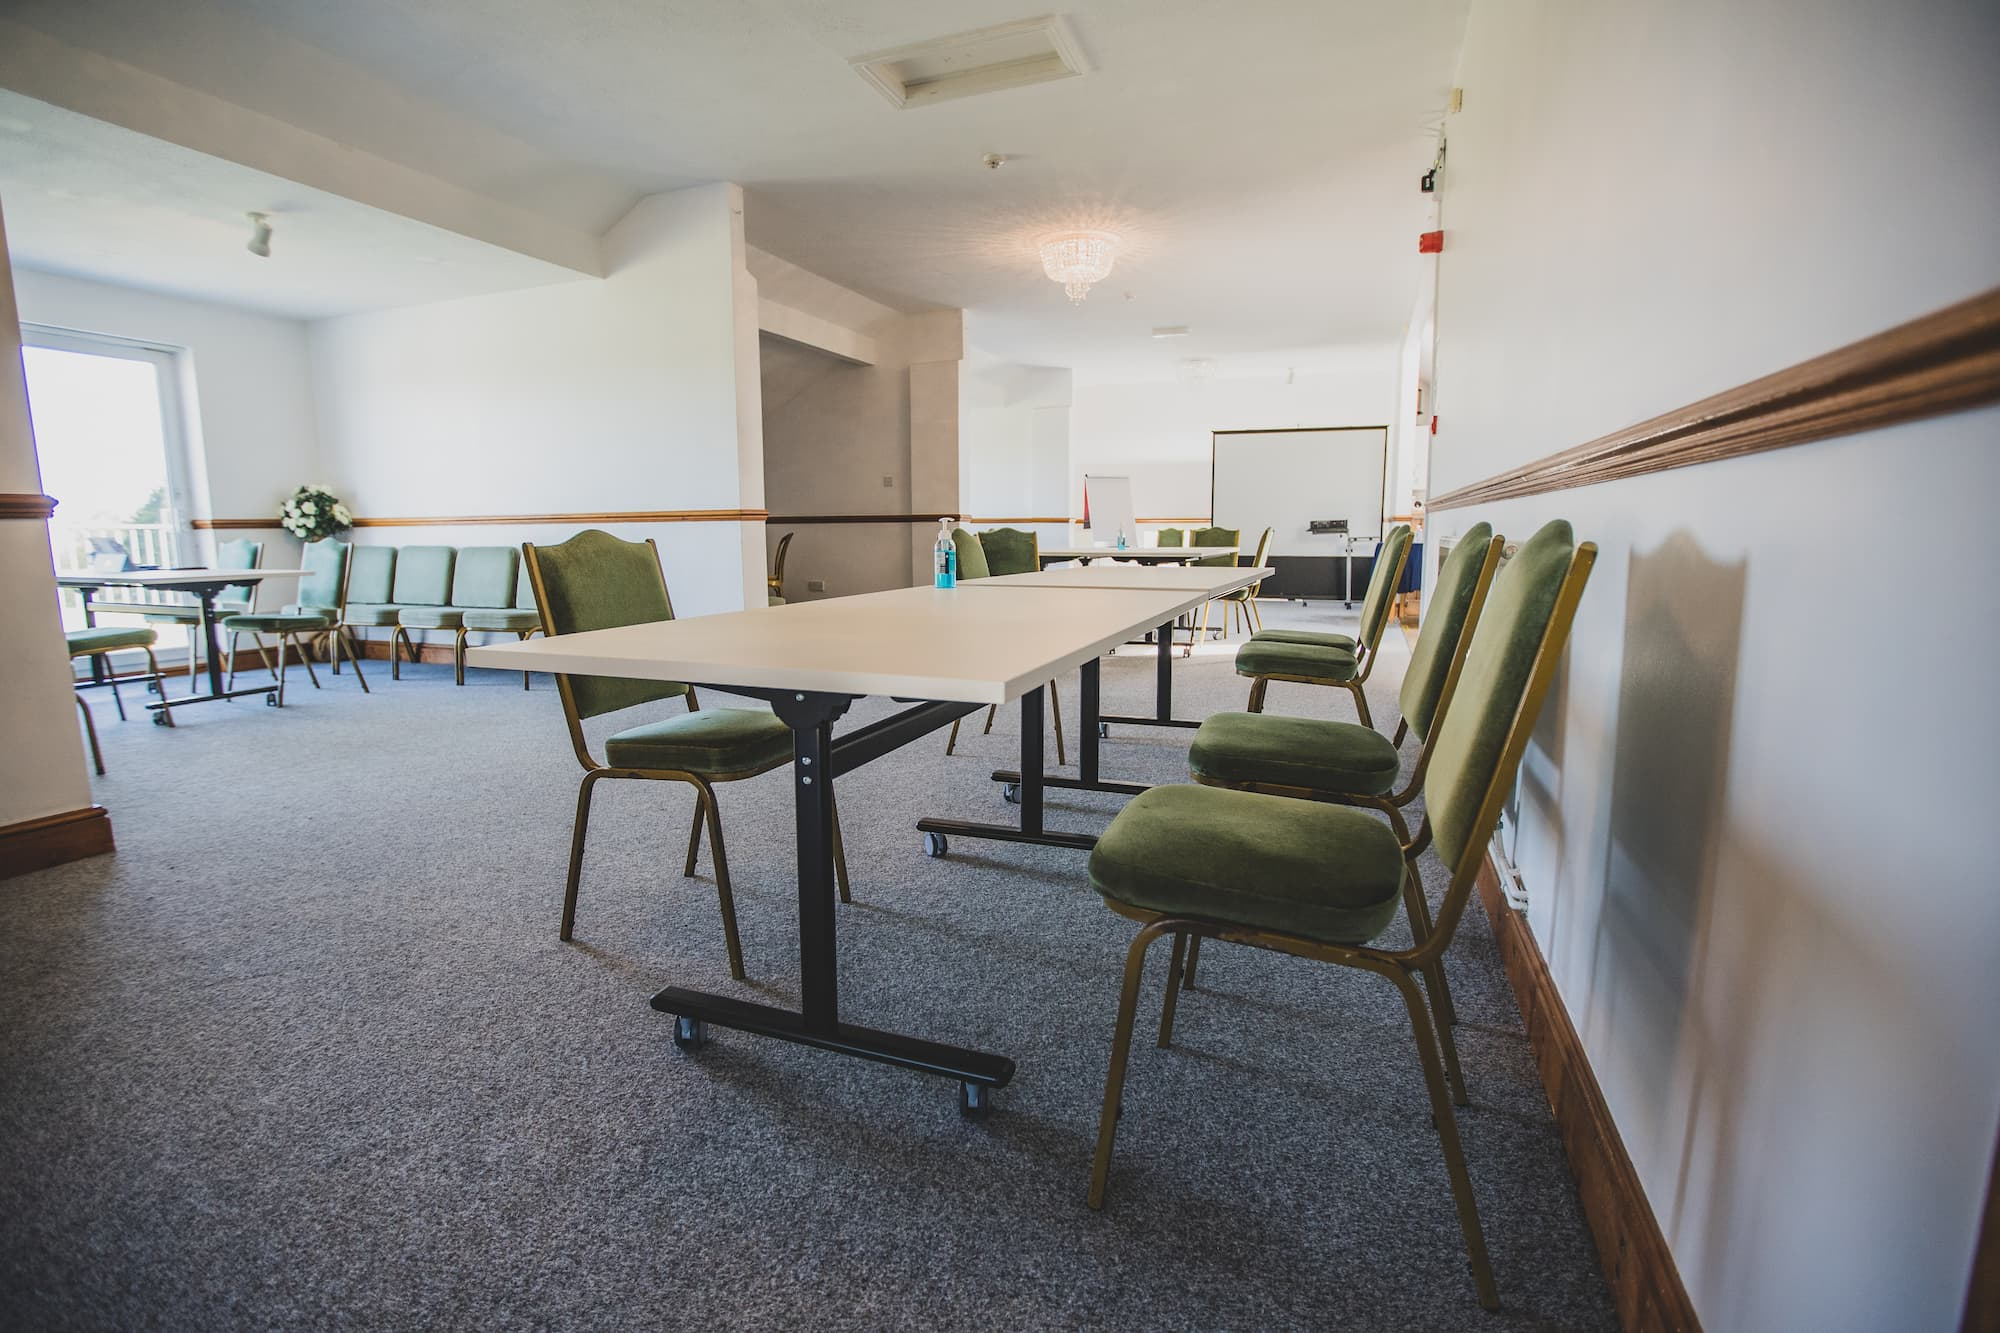 A large, light room for working in with plenty of tables and chairs spaced out.